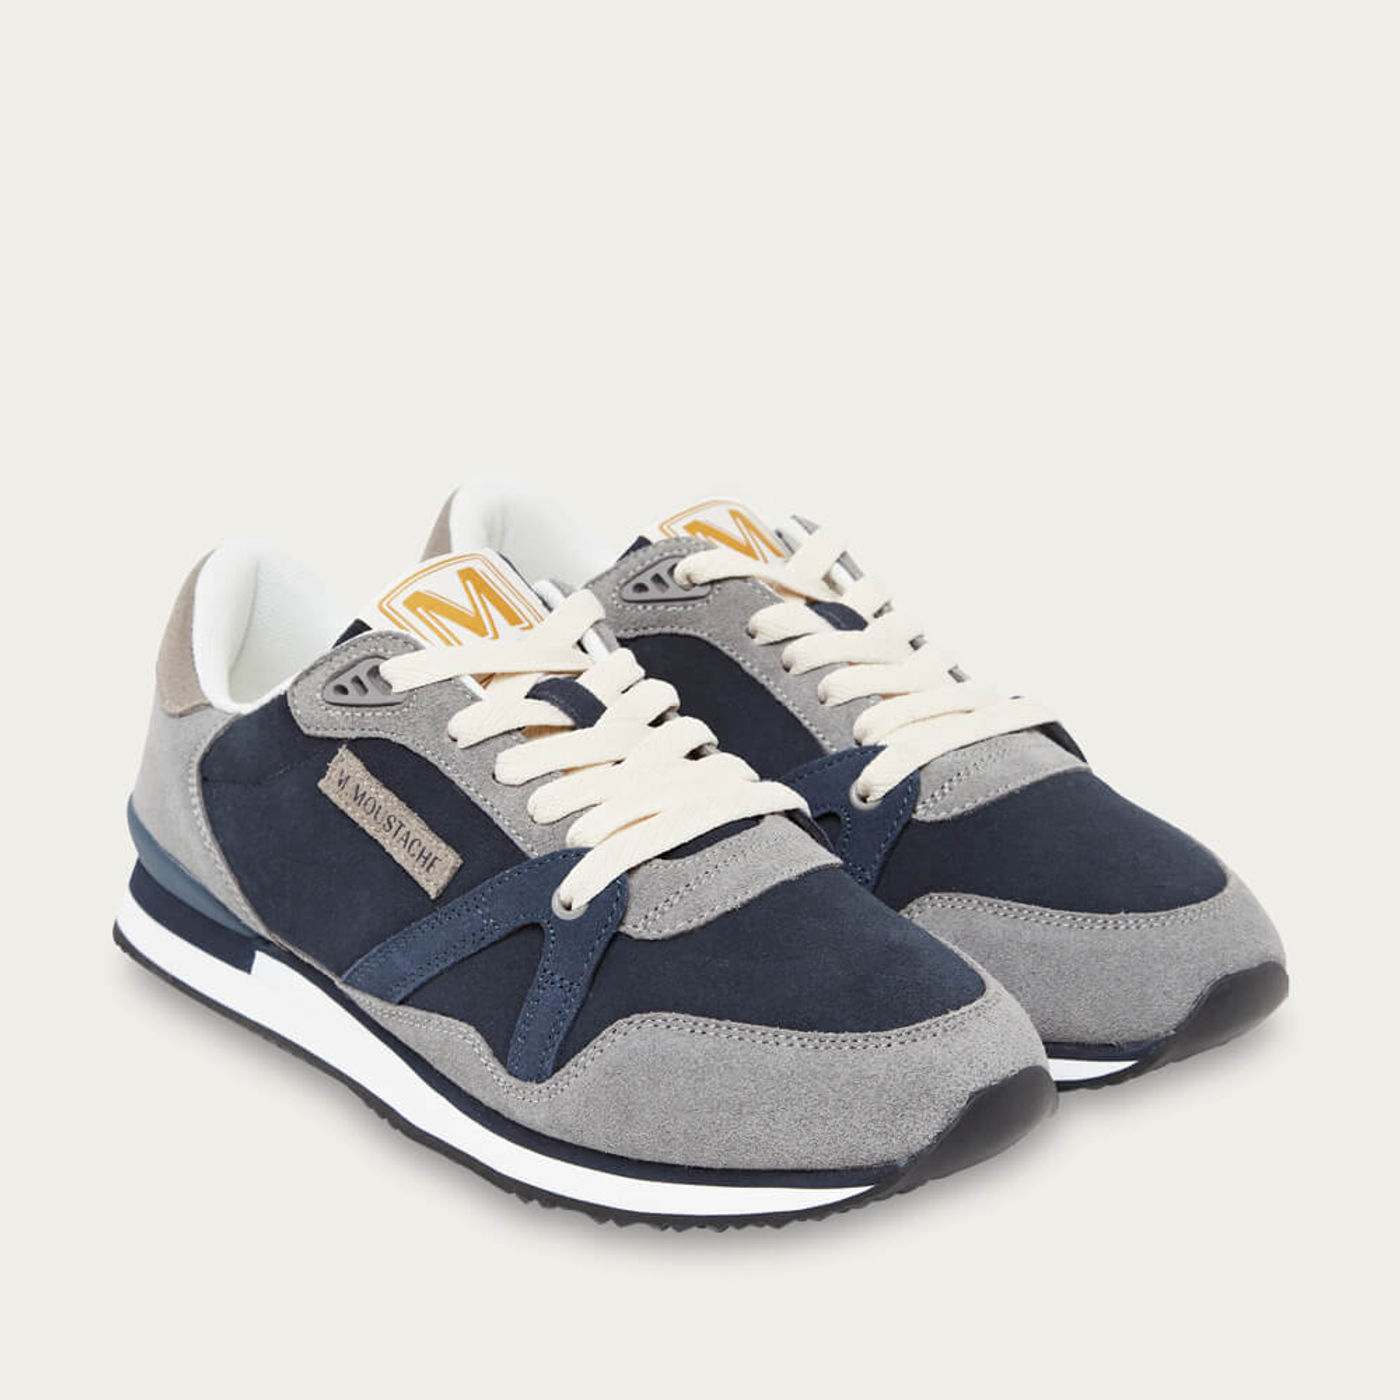 Gray and Navy Suede André Running Shoes | Bombinate